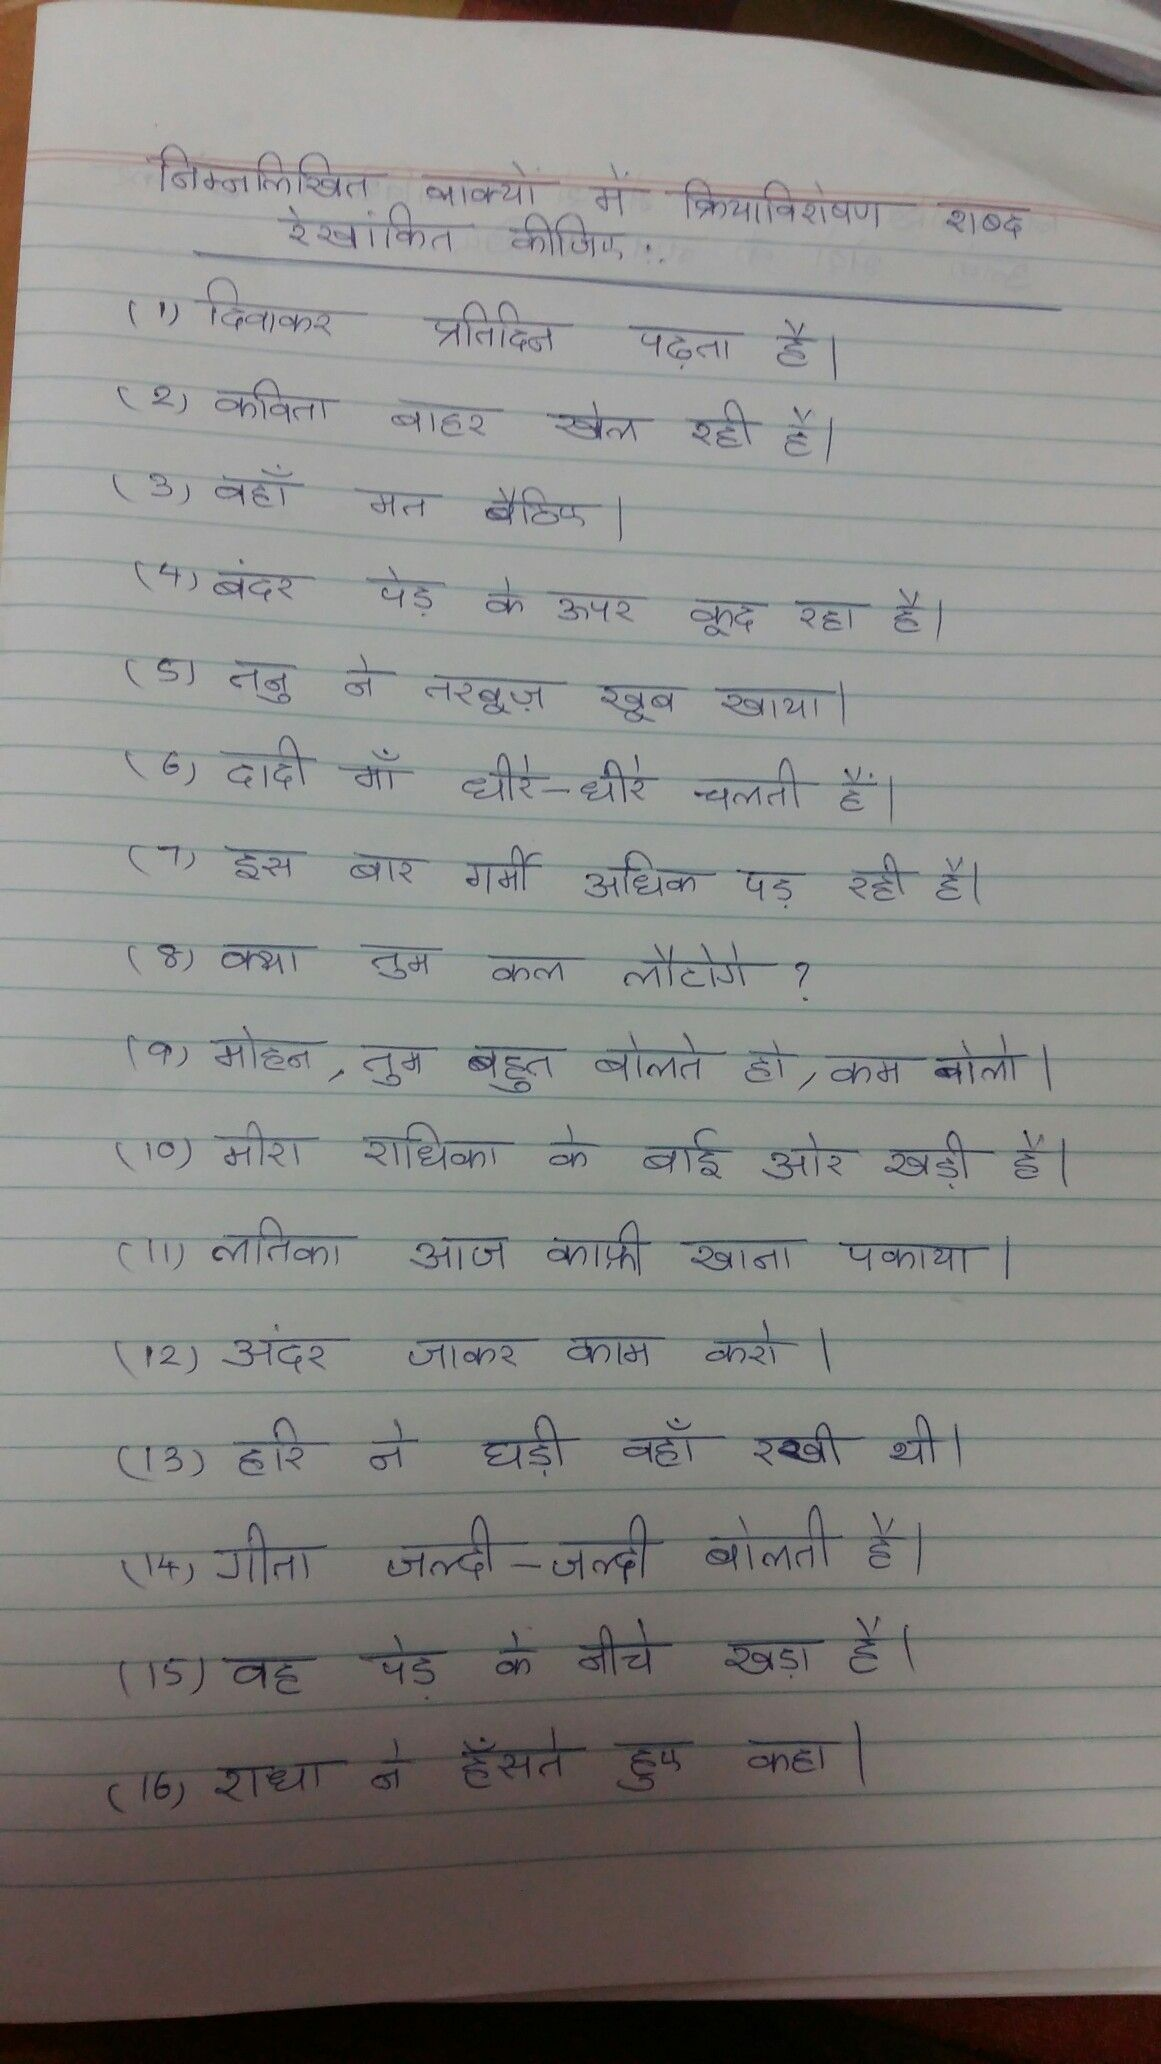 Hindi Grammar Kriyavisheshan Worksheet